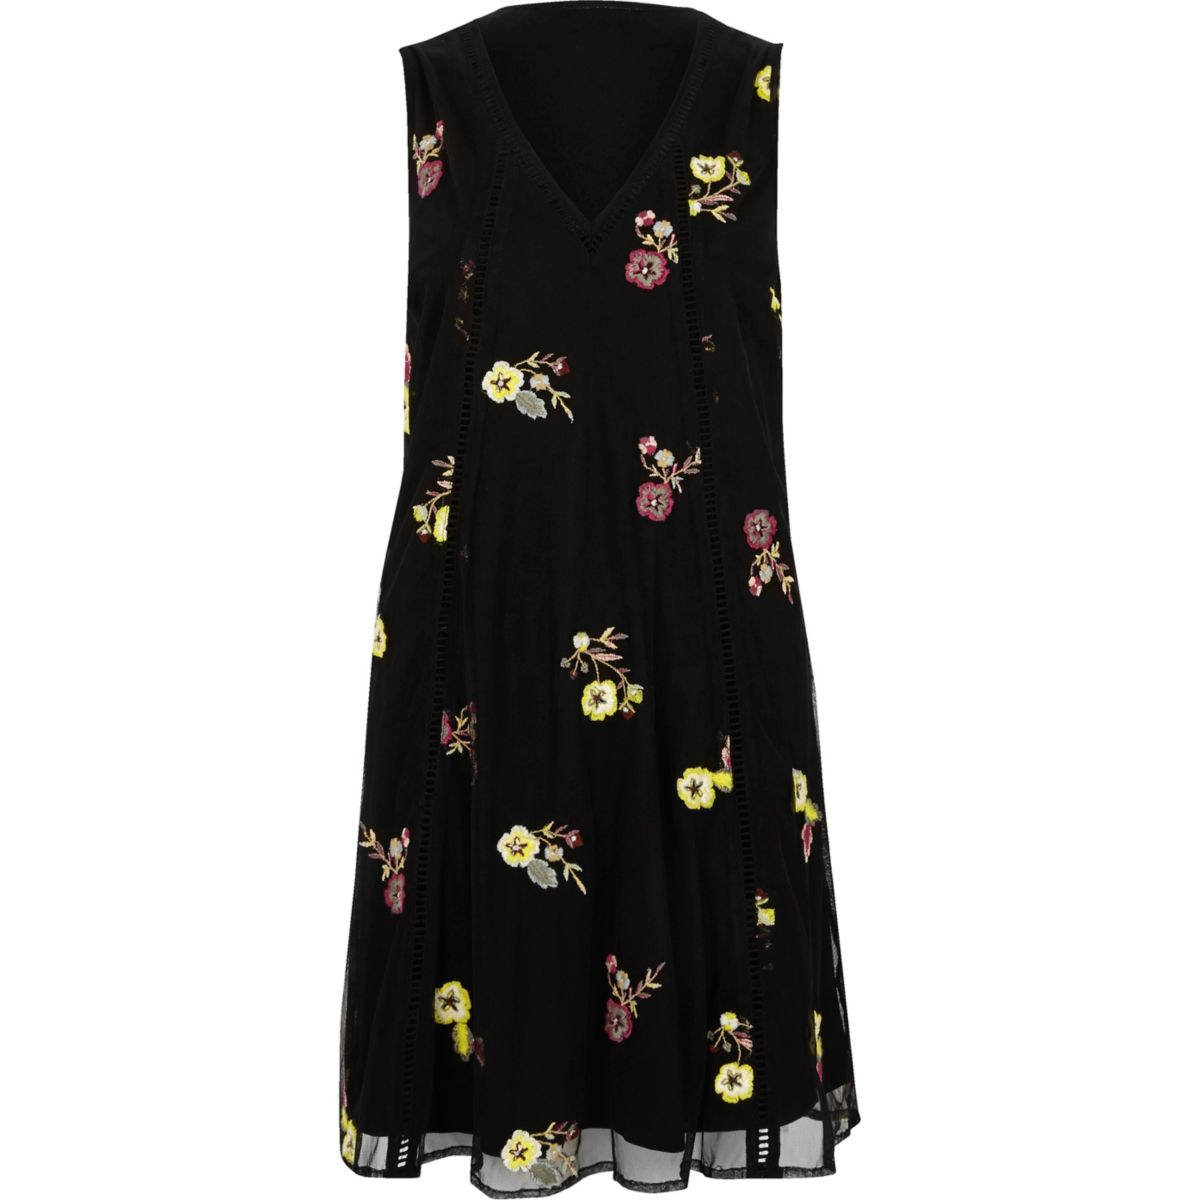 Black floral embroidered swing dress